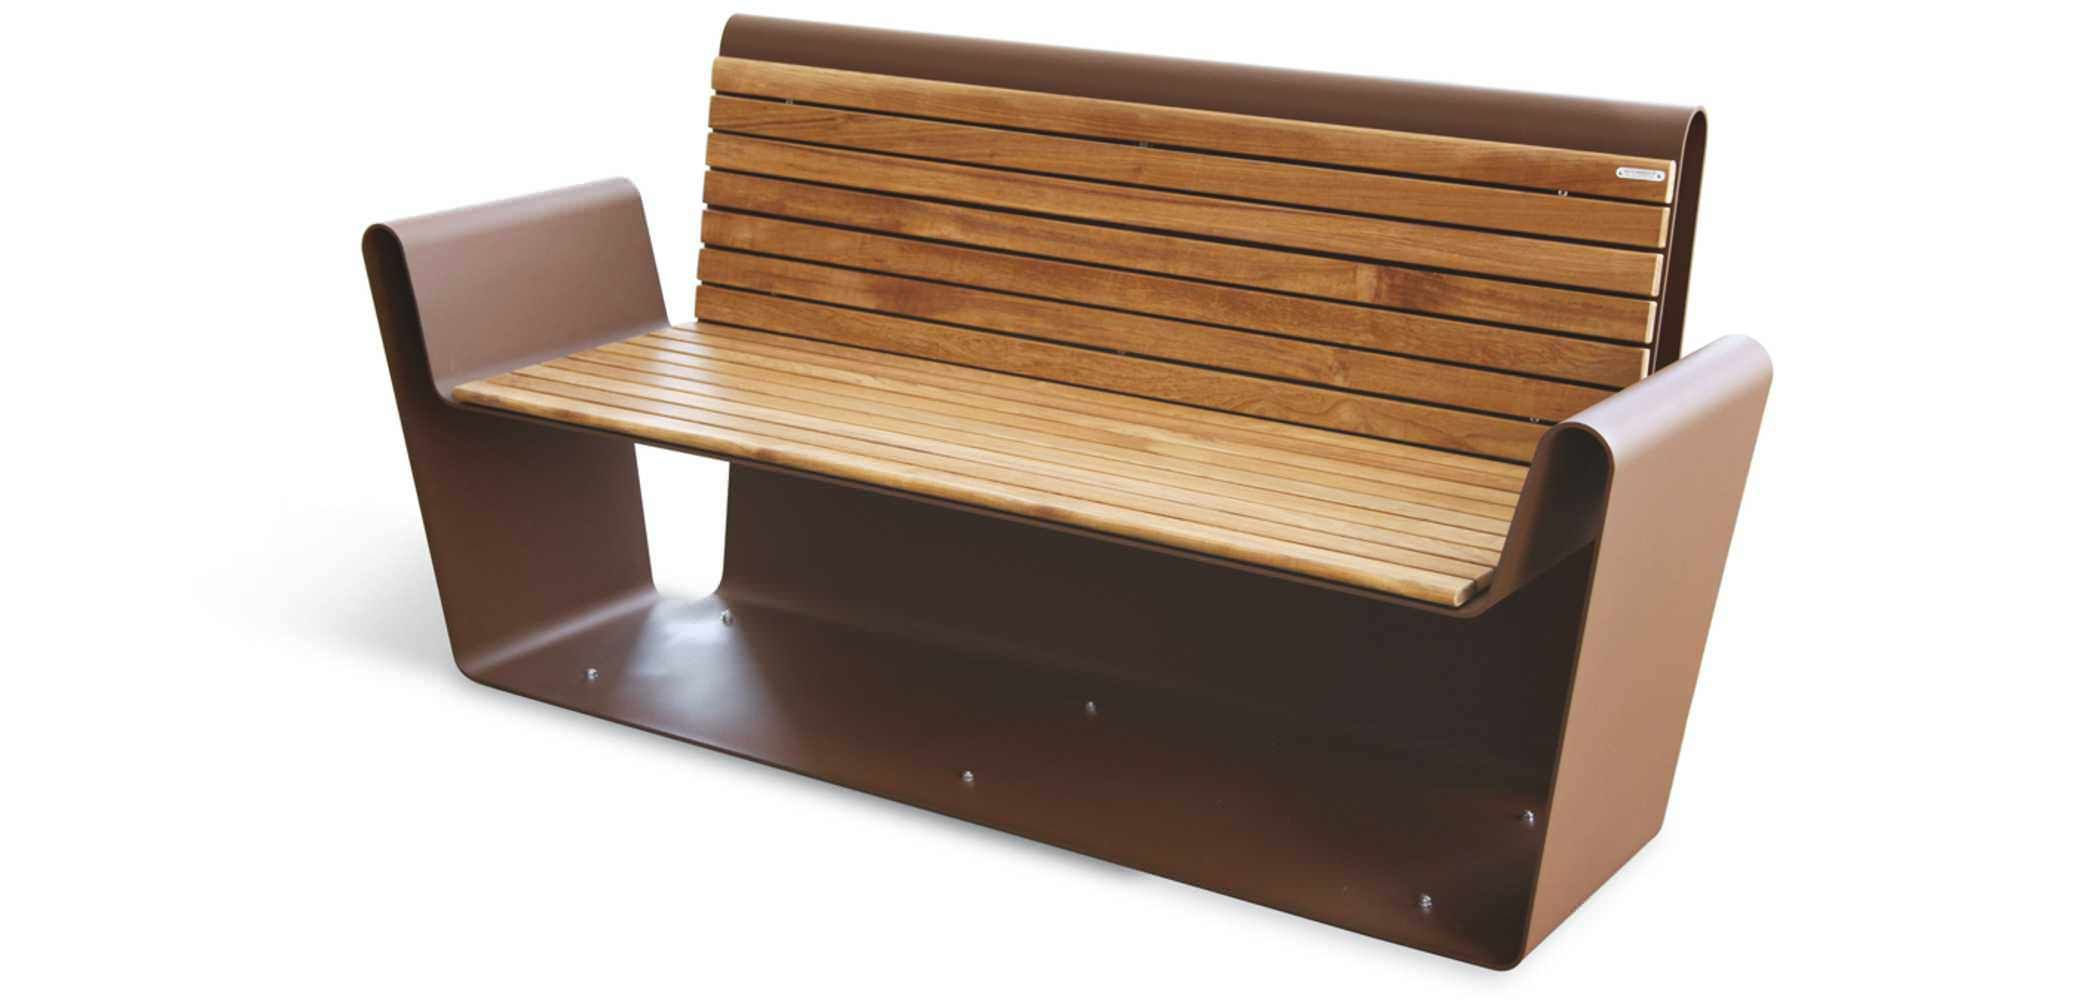 Public Bench / Contemporary / Stainless Steel / Modular Throughout Krystal Ergonomic Metal Garden Benches (View 16 of 25)